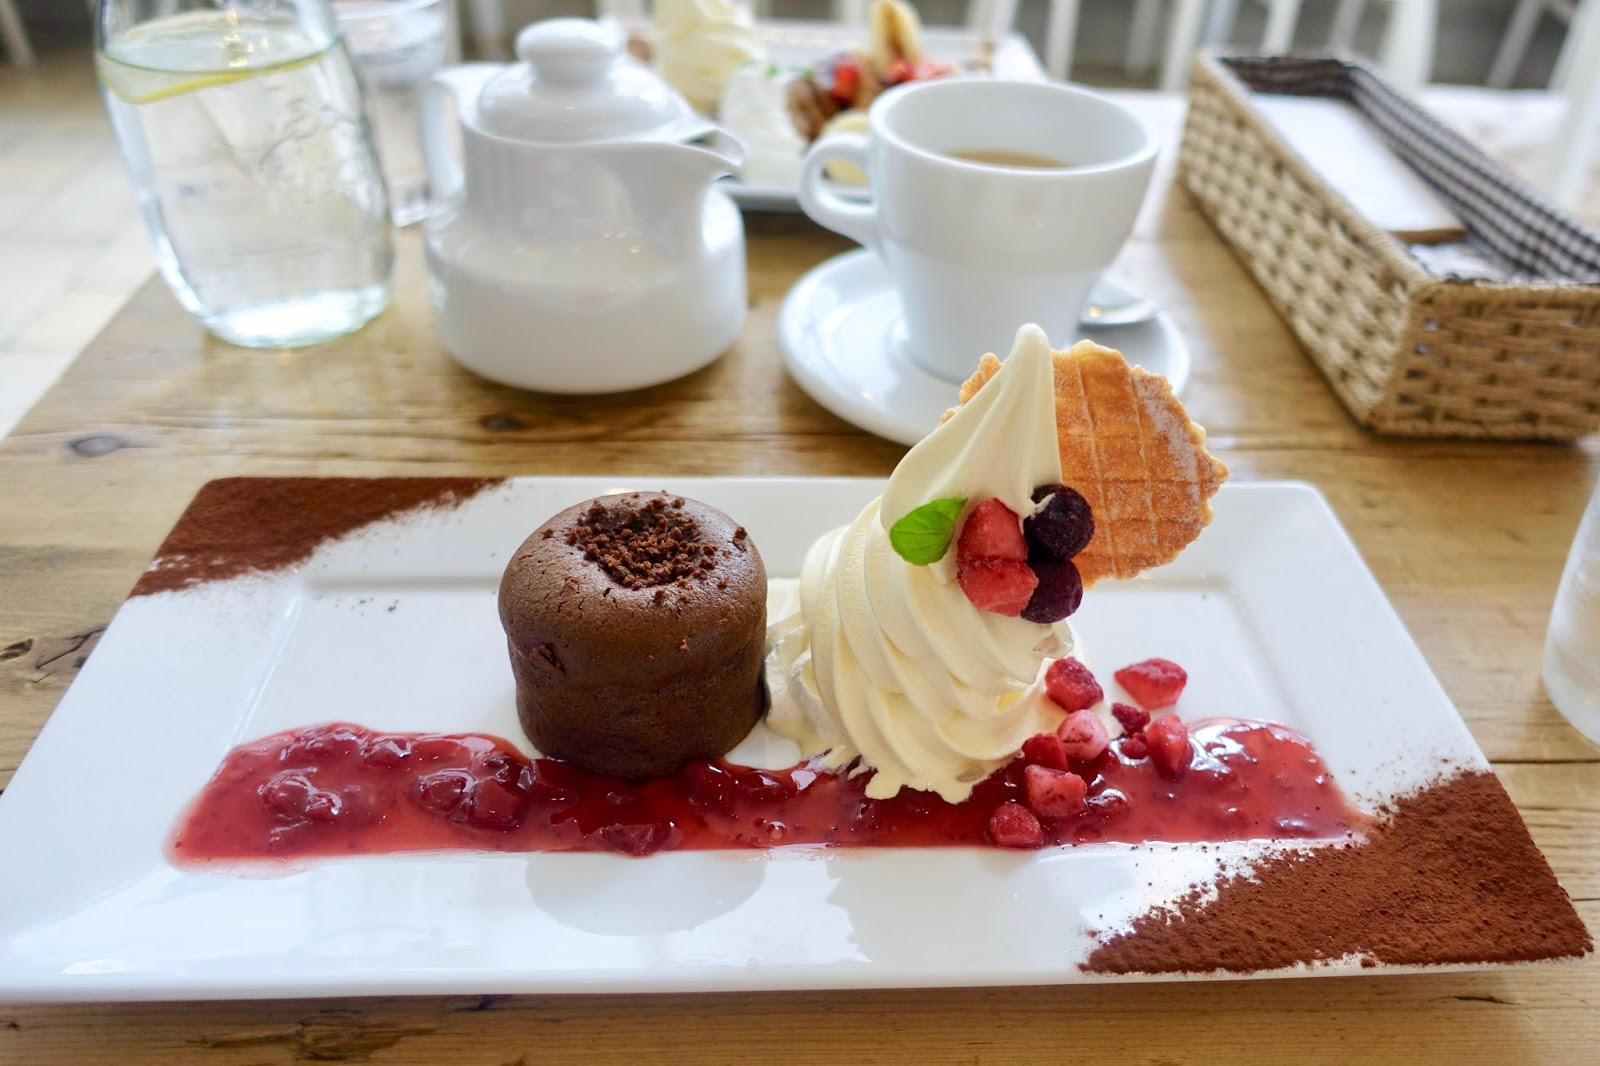 DESSERT CAFES TO TRY IN TOYKO